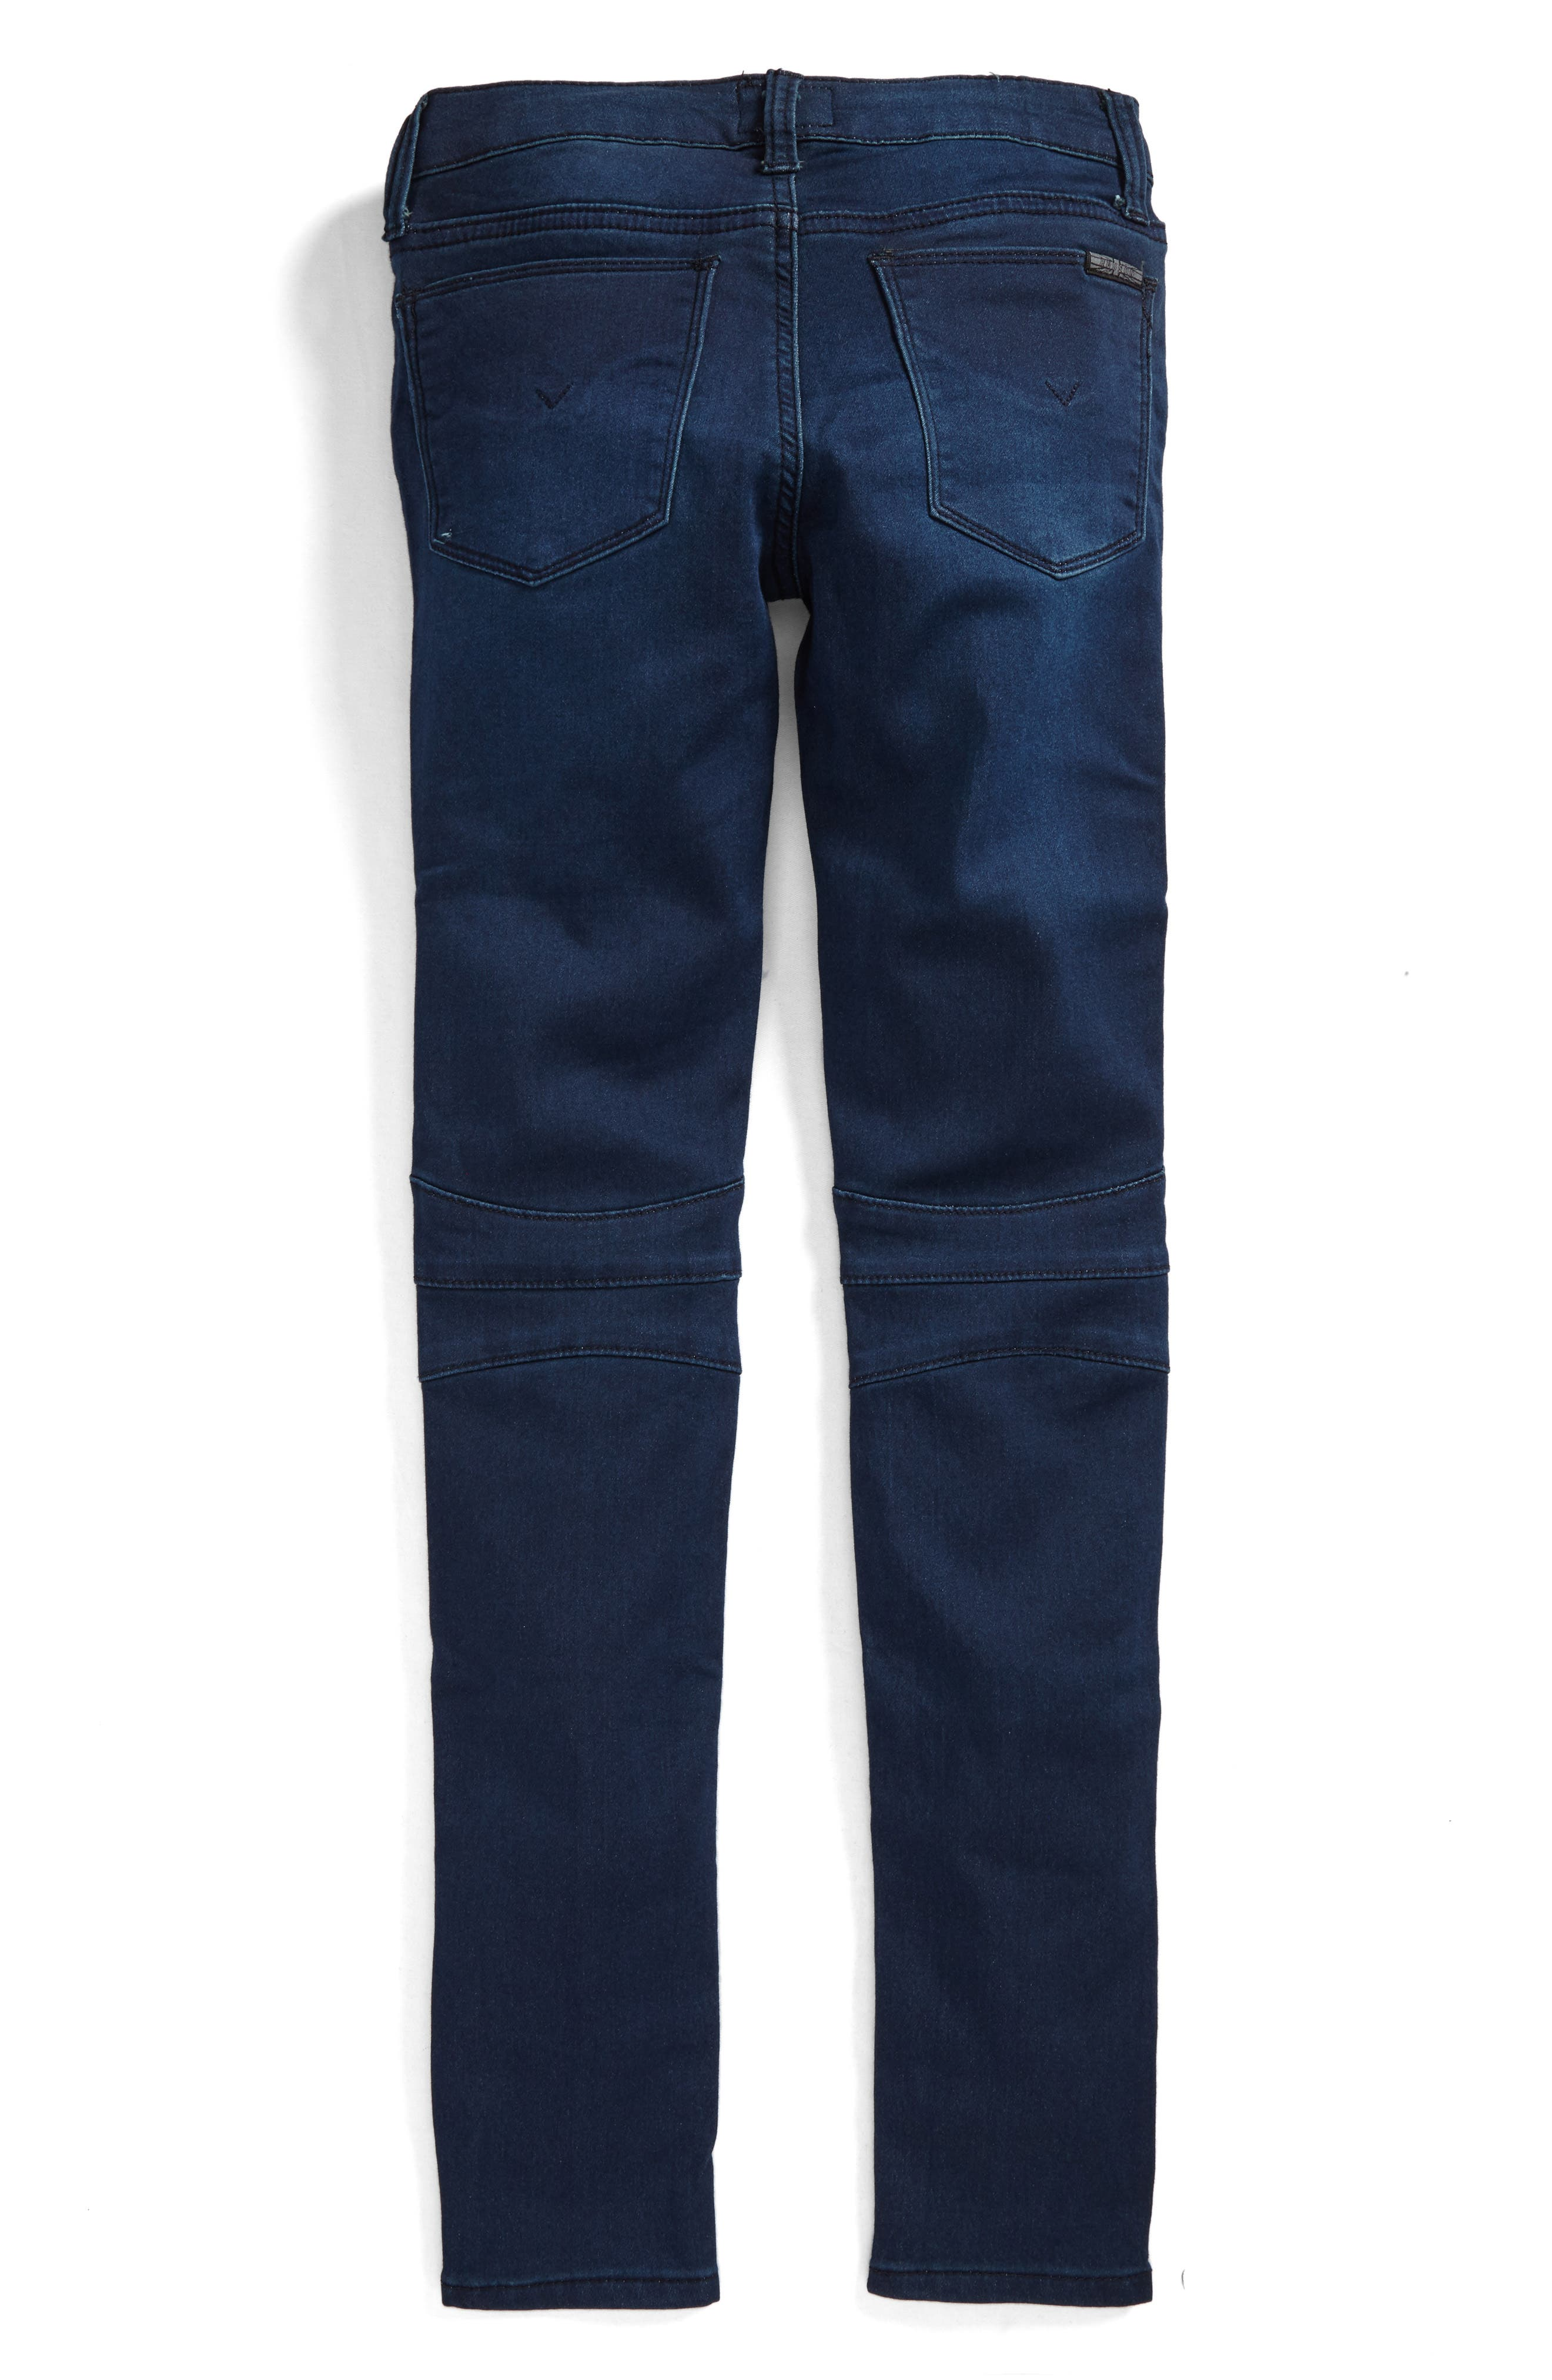 French Terry Moto Jeans,                             Alternate thumbnail 2, color,                             376